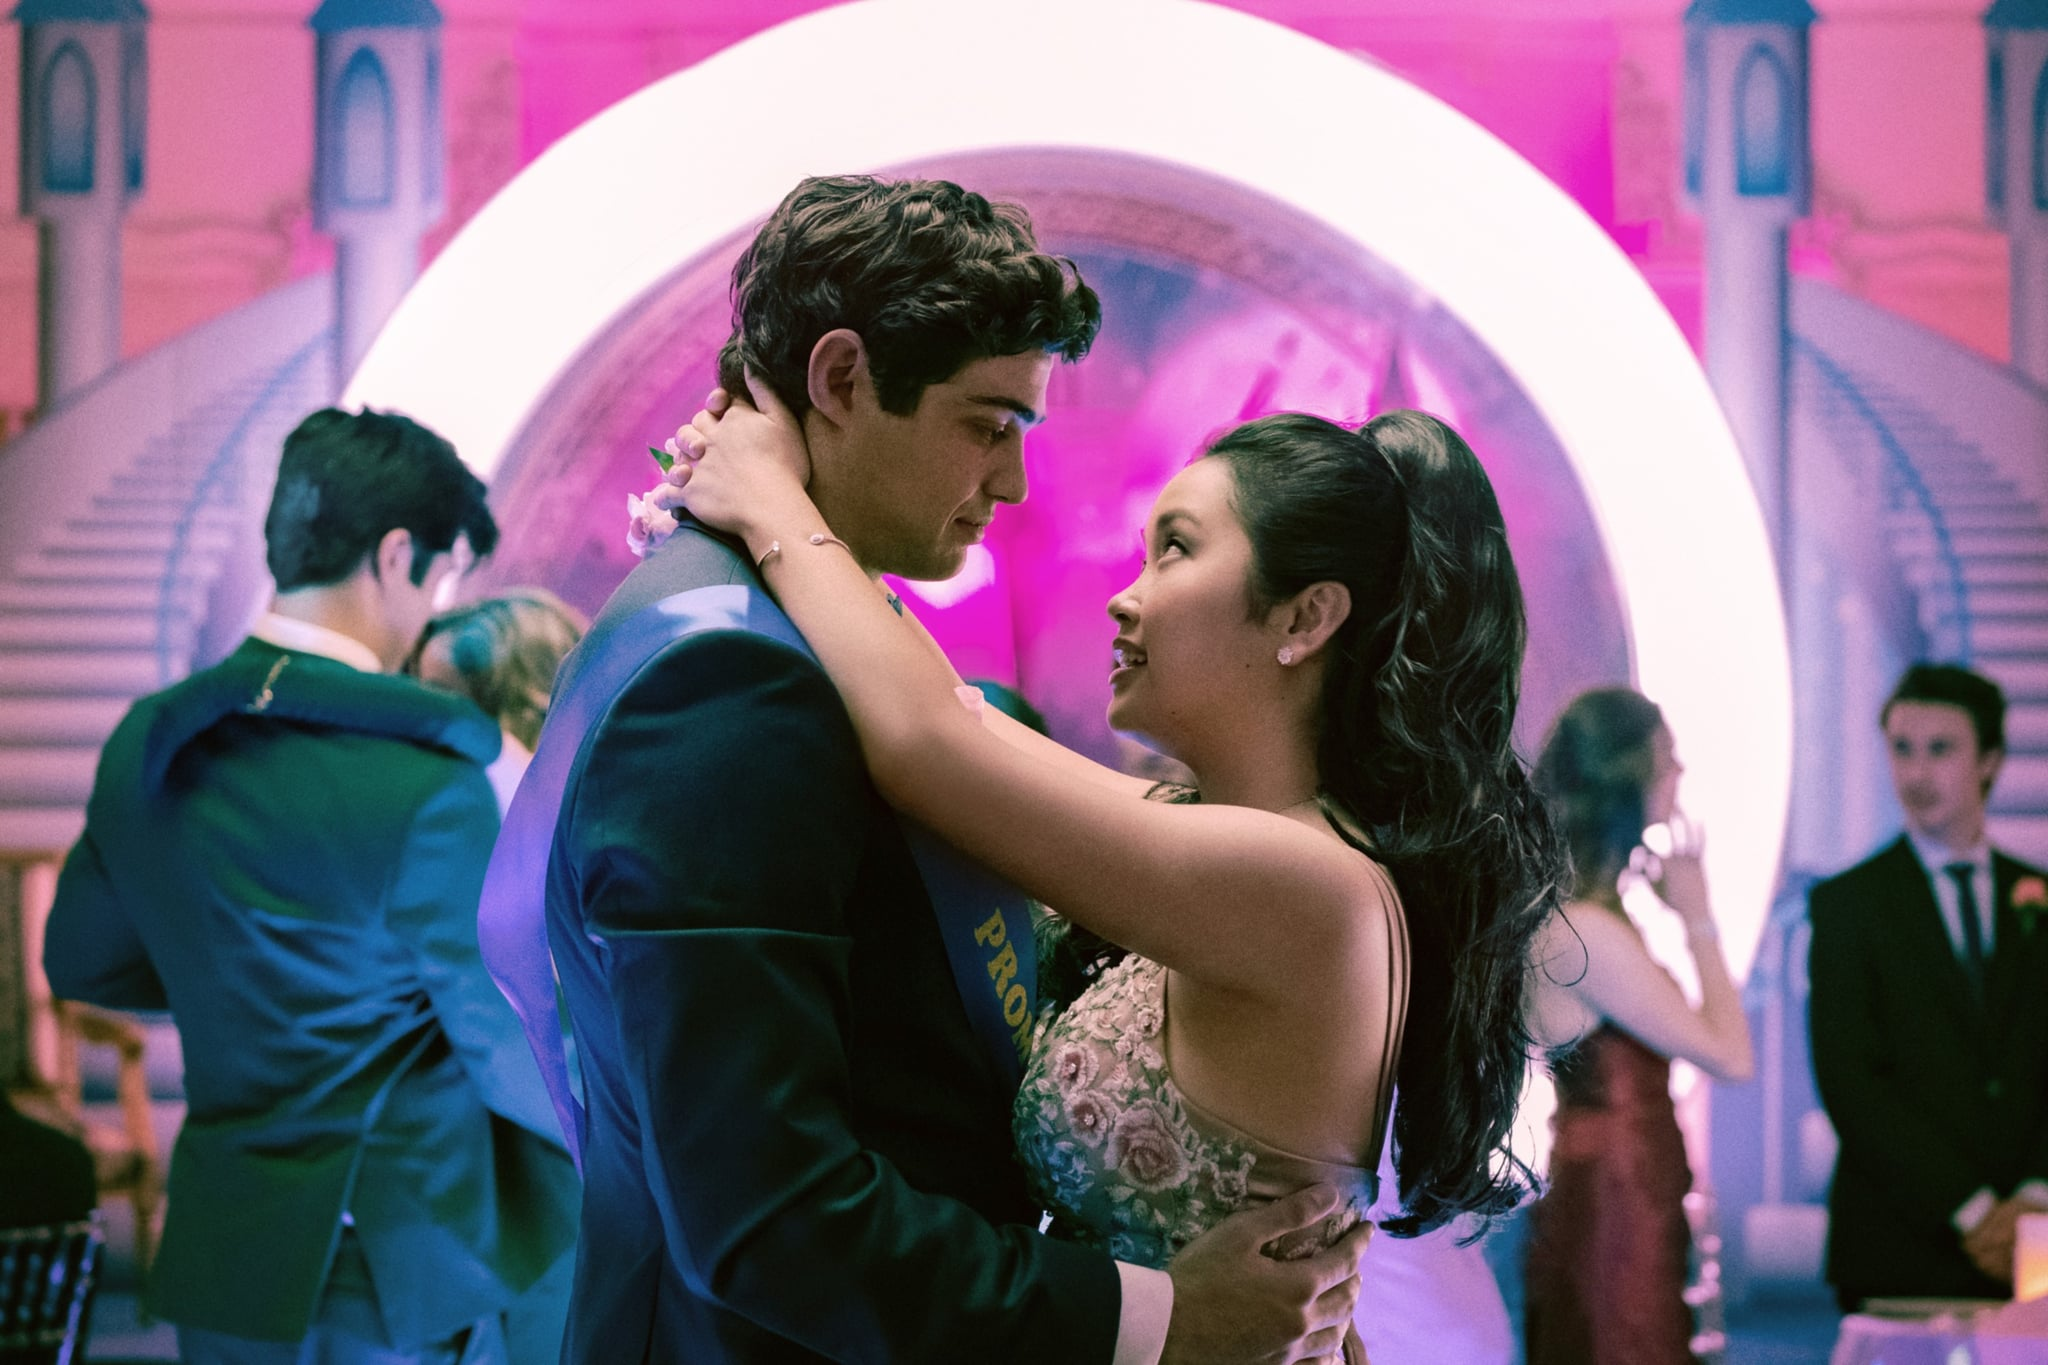 TO ALL THE BOYS: ALWAYS AND FOREVER, from left: Noah Centineo, Lana Condor, 2021.  ph: Katie Yu / Netflix / Courtesy Everett Collection